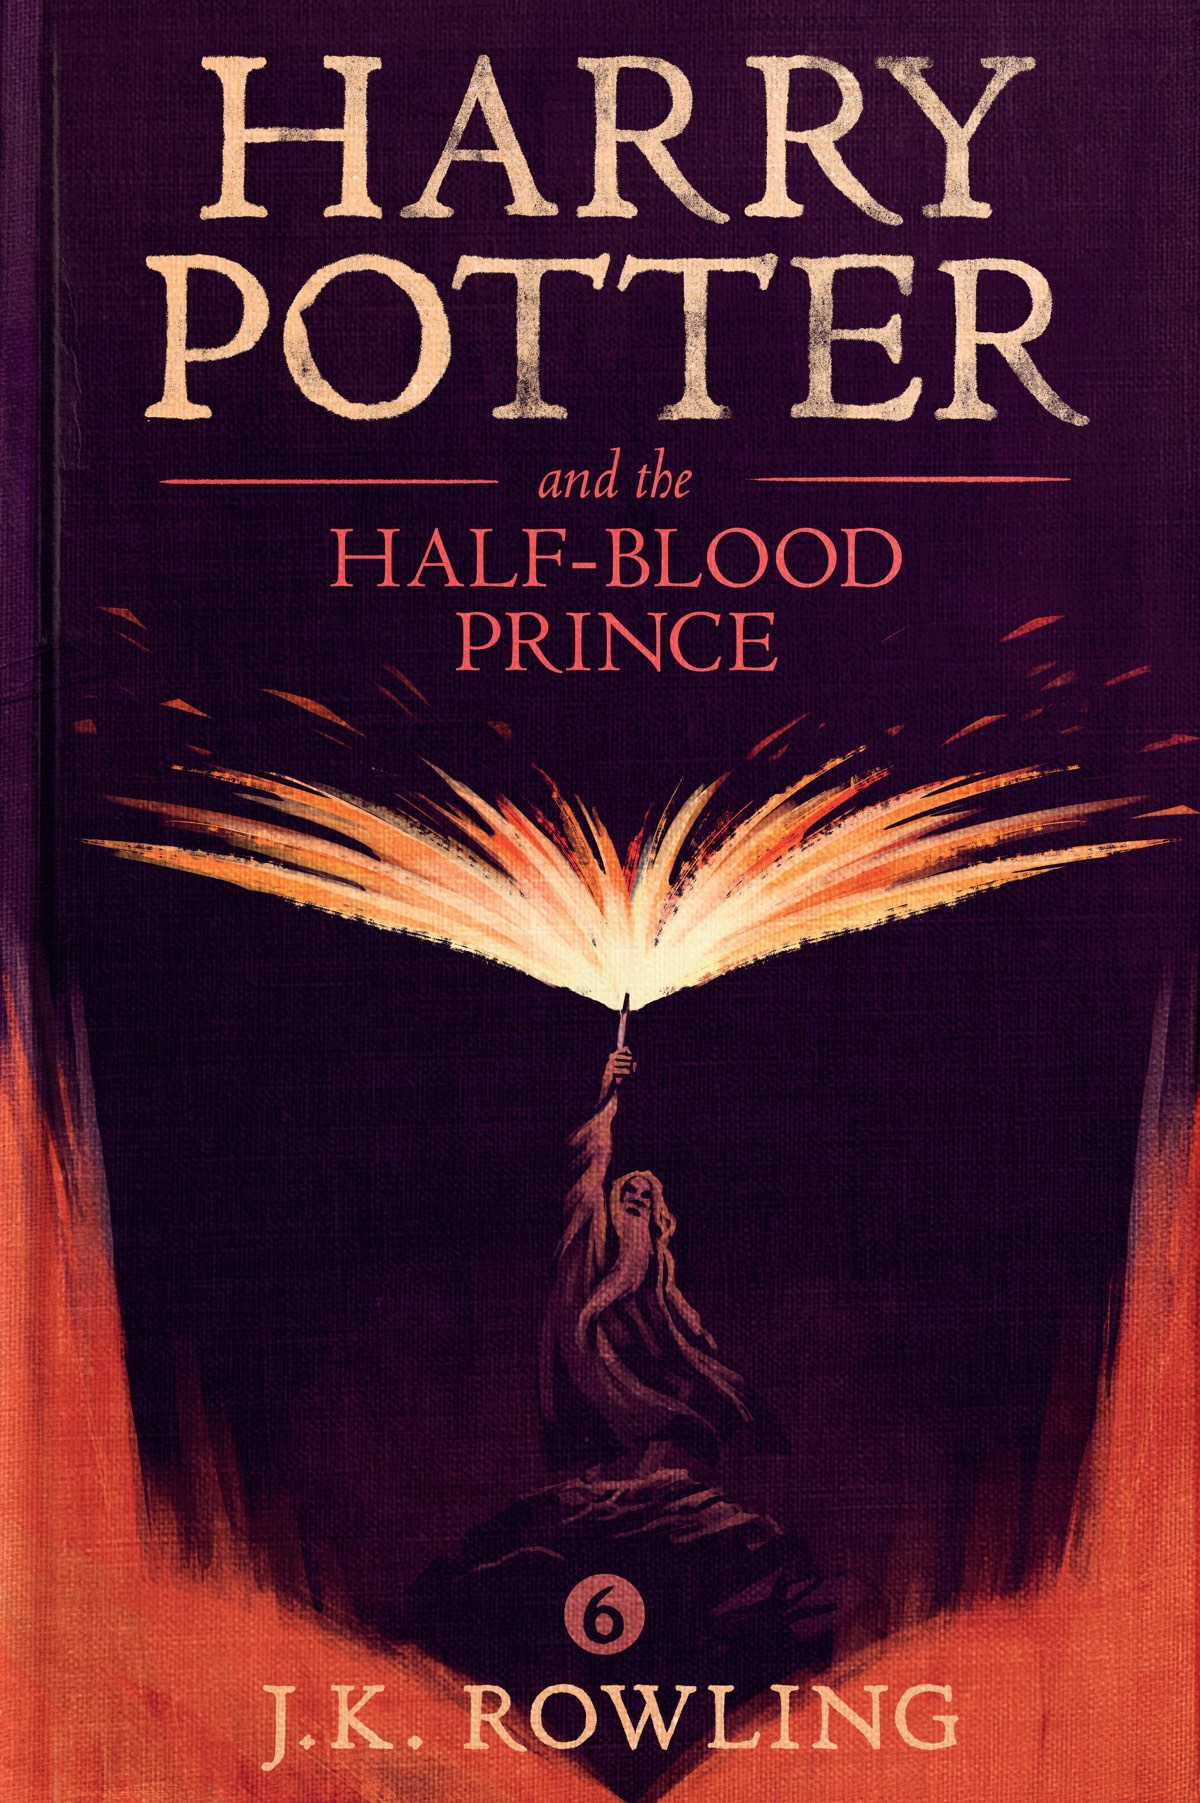 The First Harry Potter Book Cover : Olly moss designed the covers for harry potter ebooks